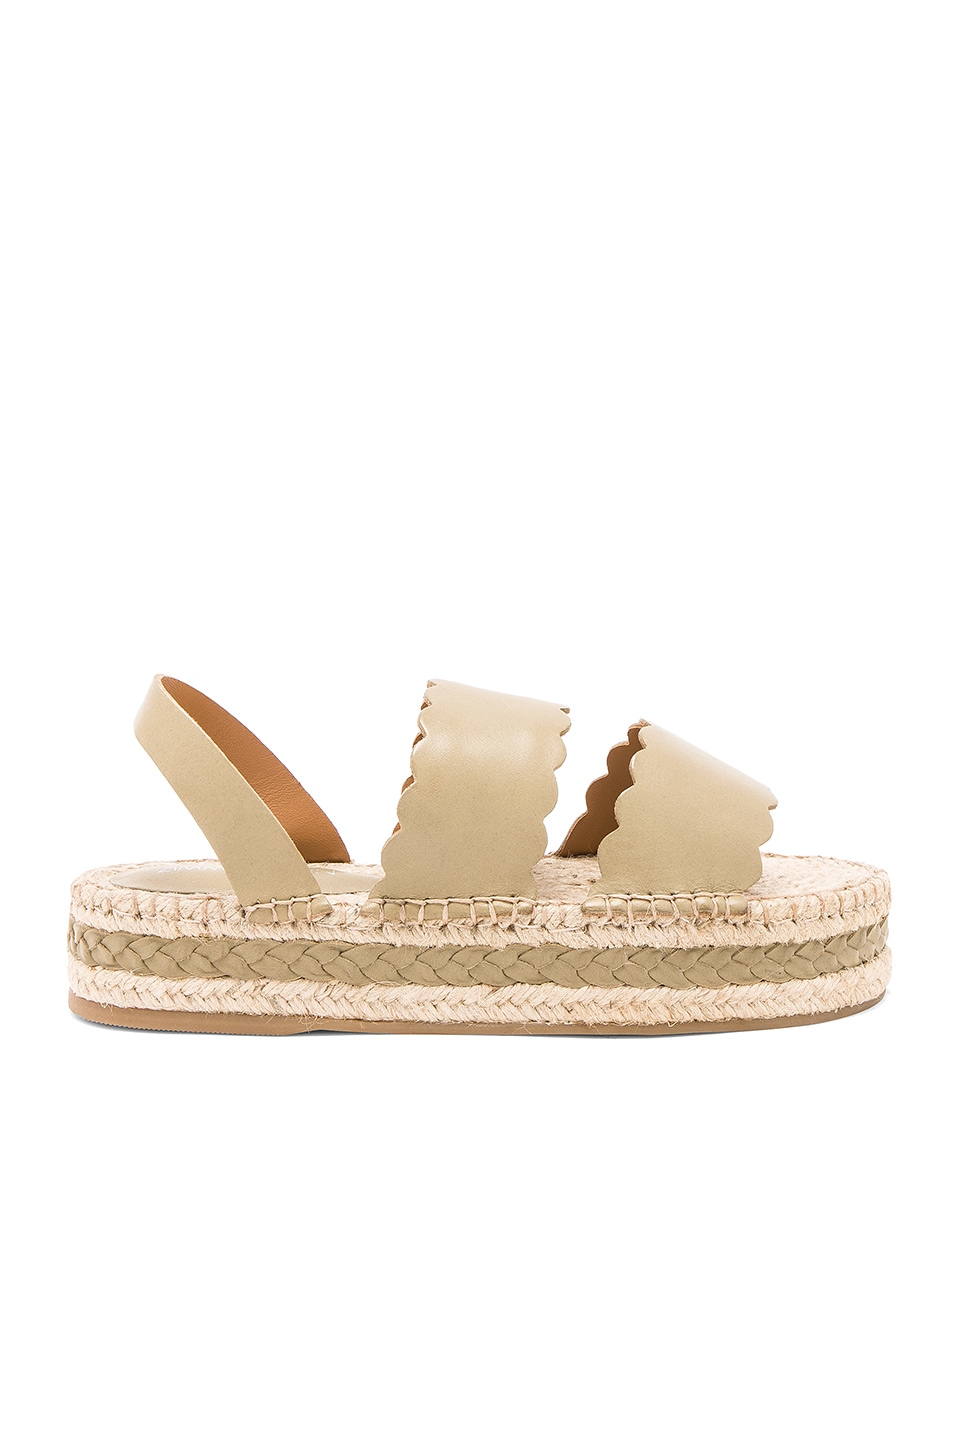 Scallop Espadrille Sandal by Zimmermann